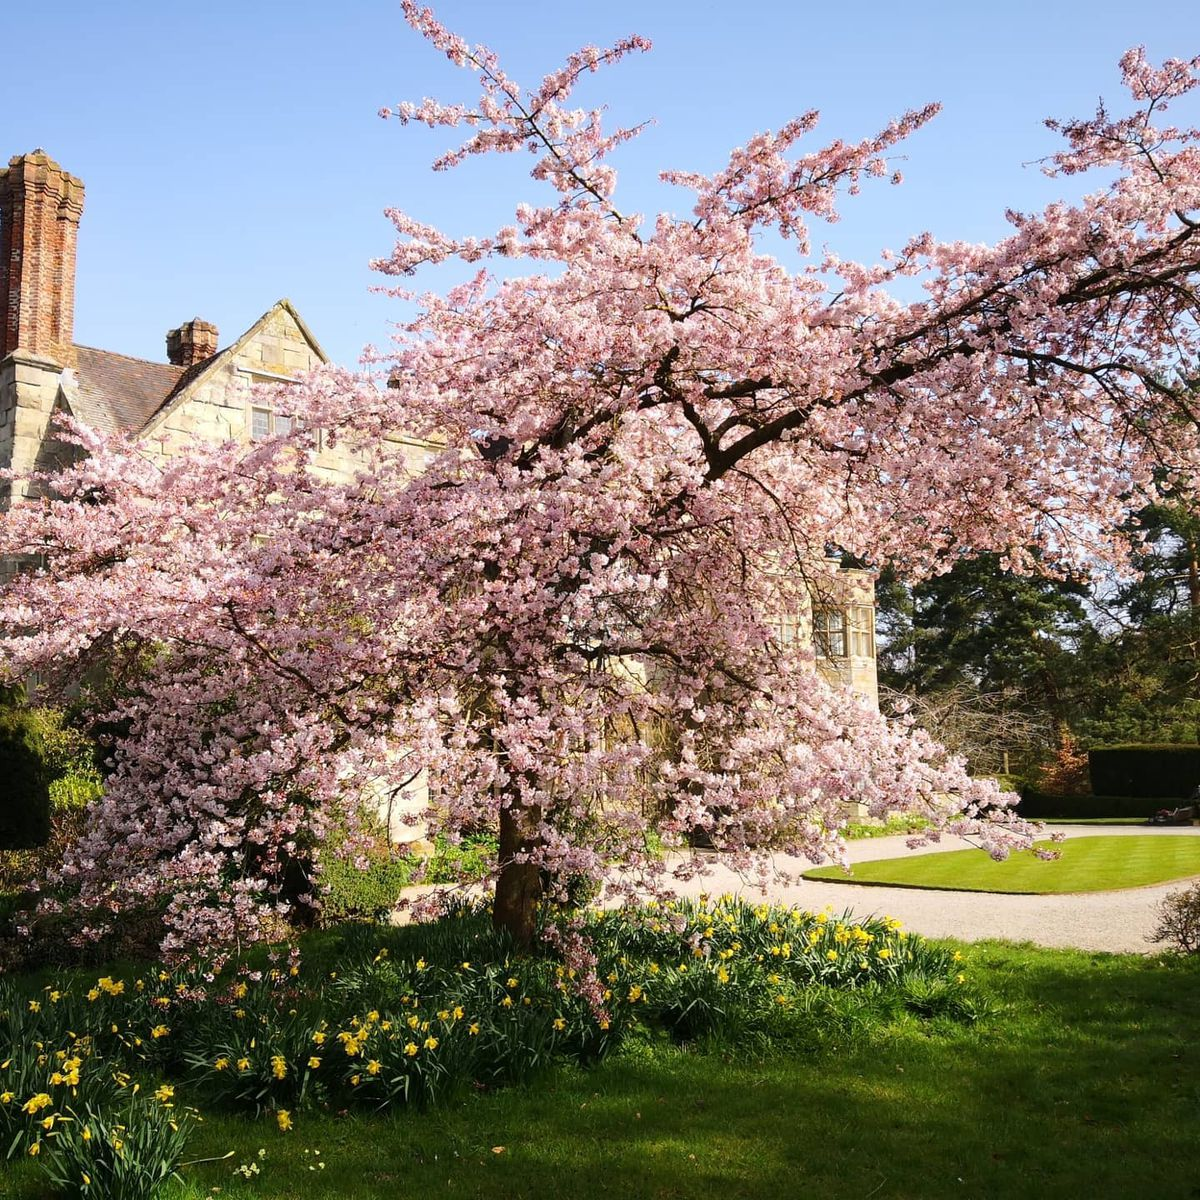 The Yoshino Cherry Tree at the National Trust's Benthall Hall (near Broseley in Shropshire)